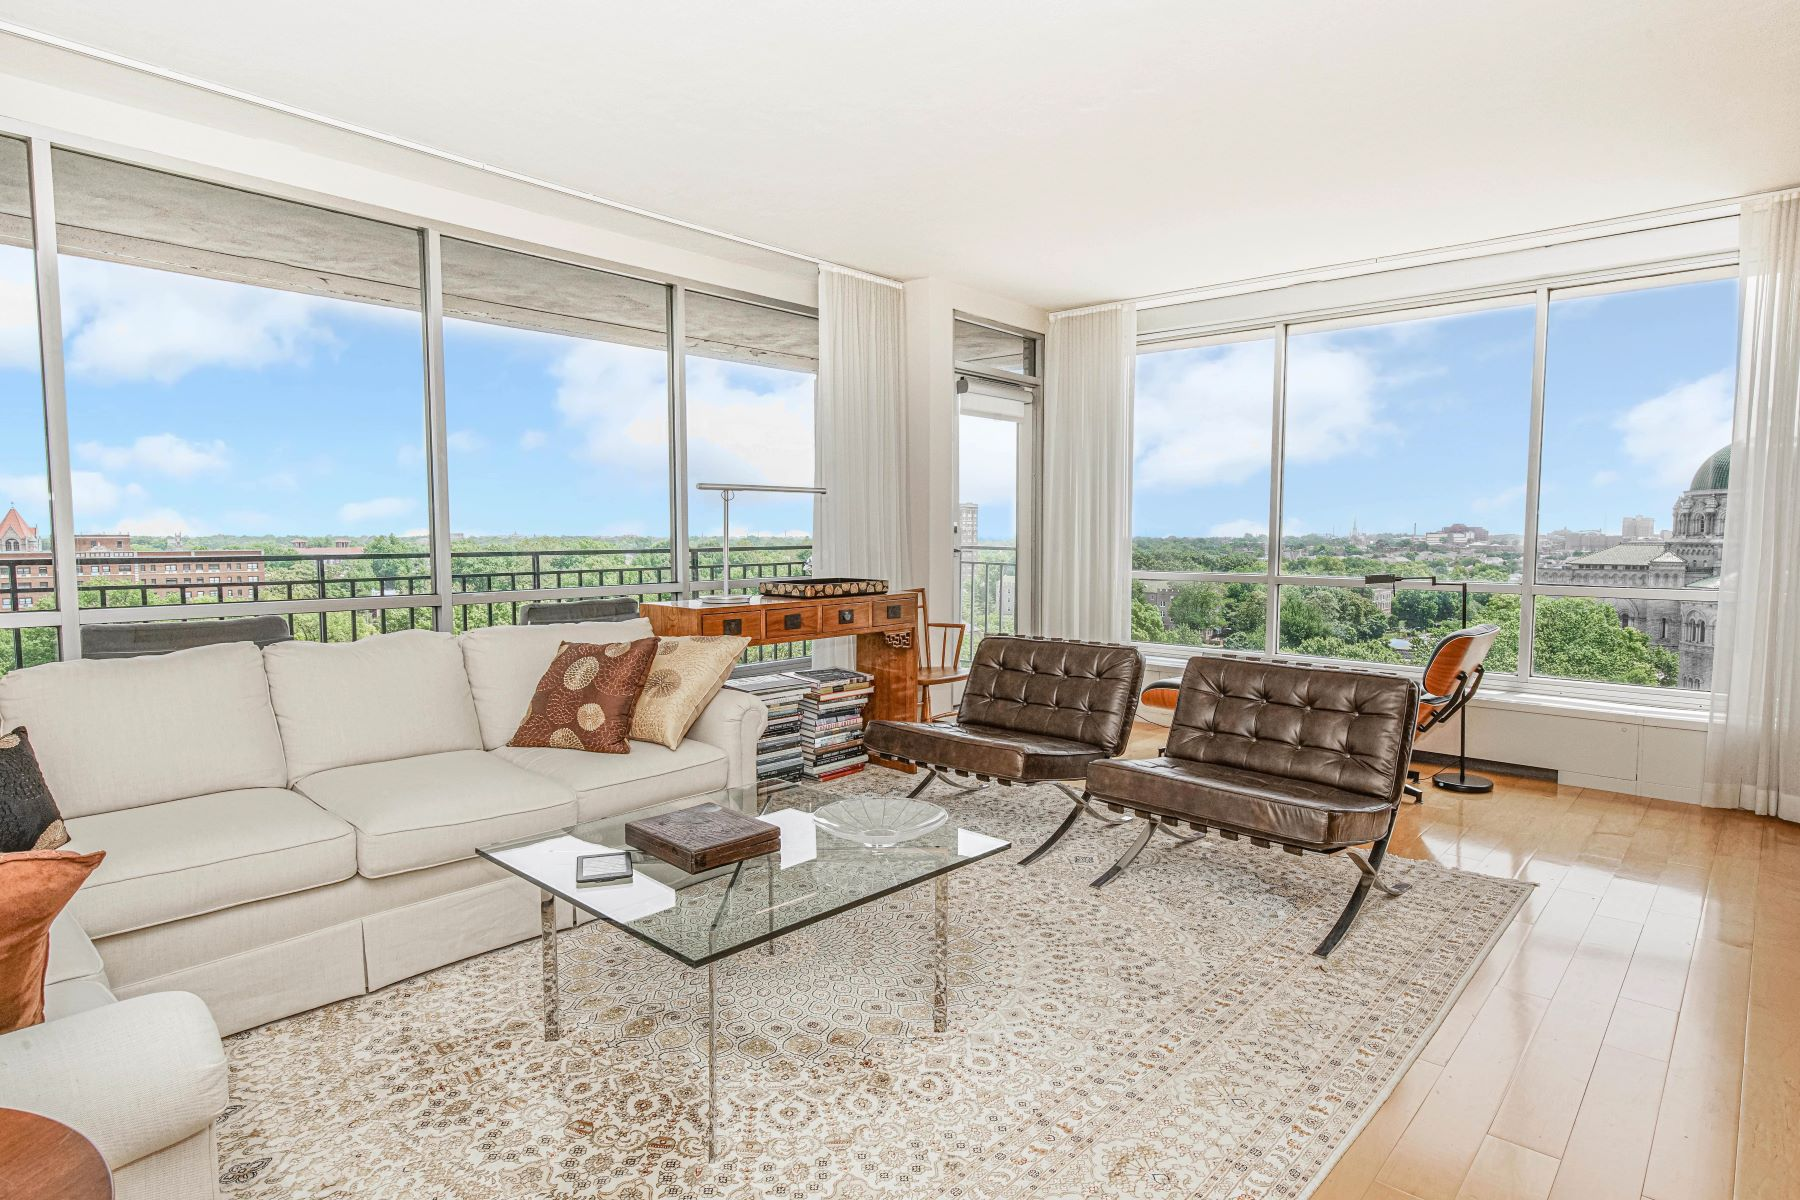 Additional photo for property listing at Updated Two Bedroom Condo in Lindell Terrace 4501 Lindell Boulevard, #10B St. Louis, Missouri 63108 United States